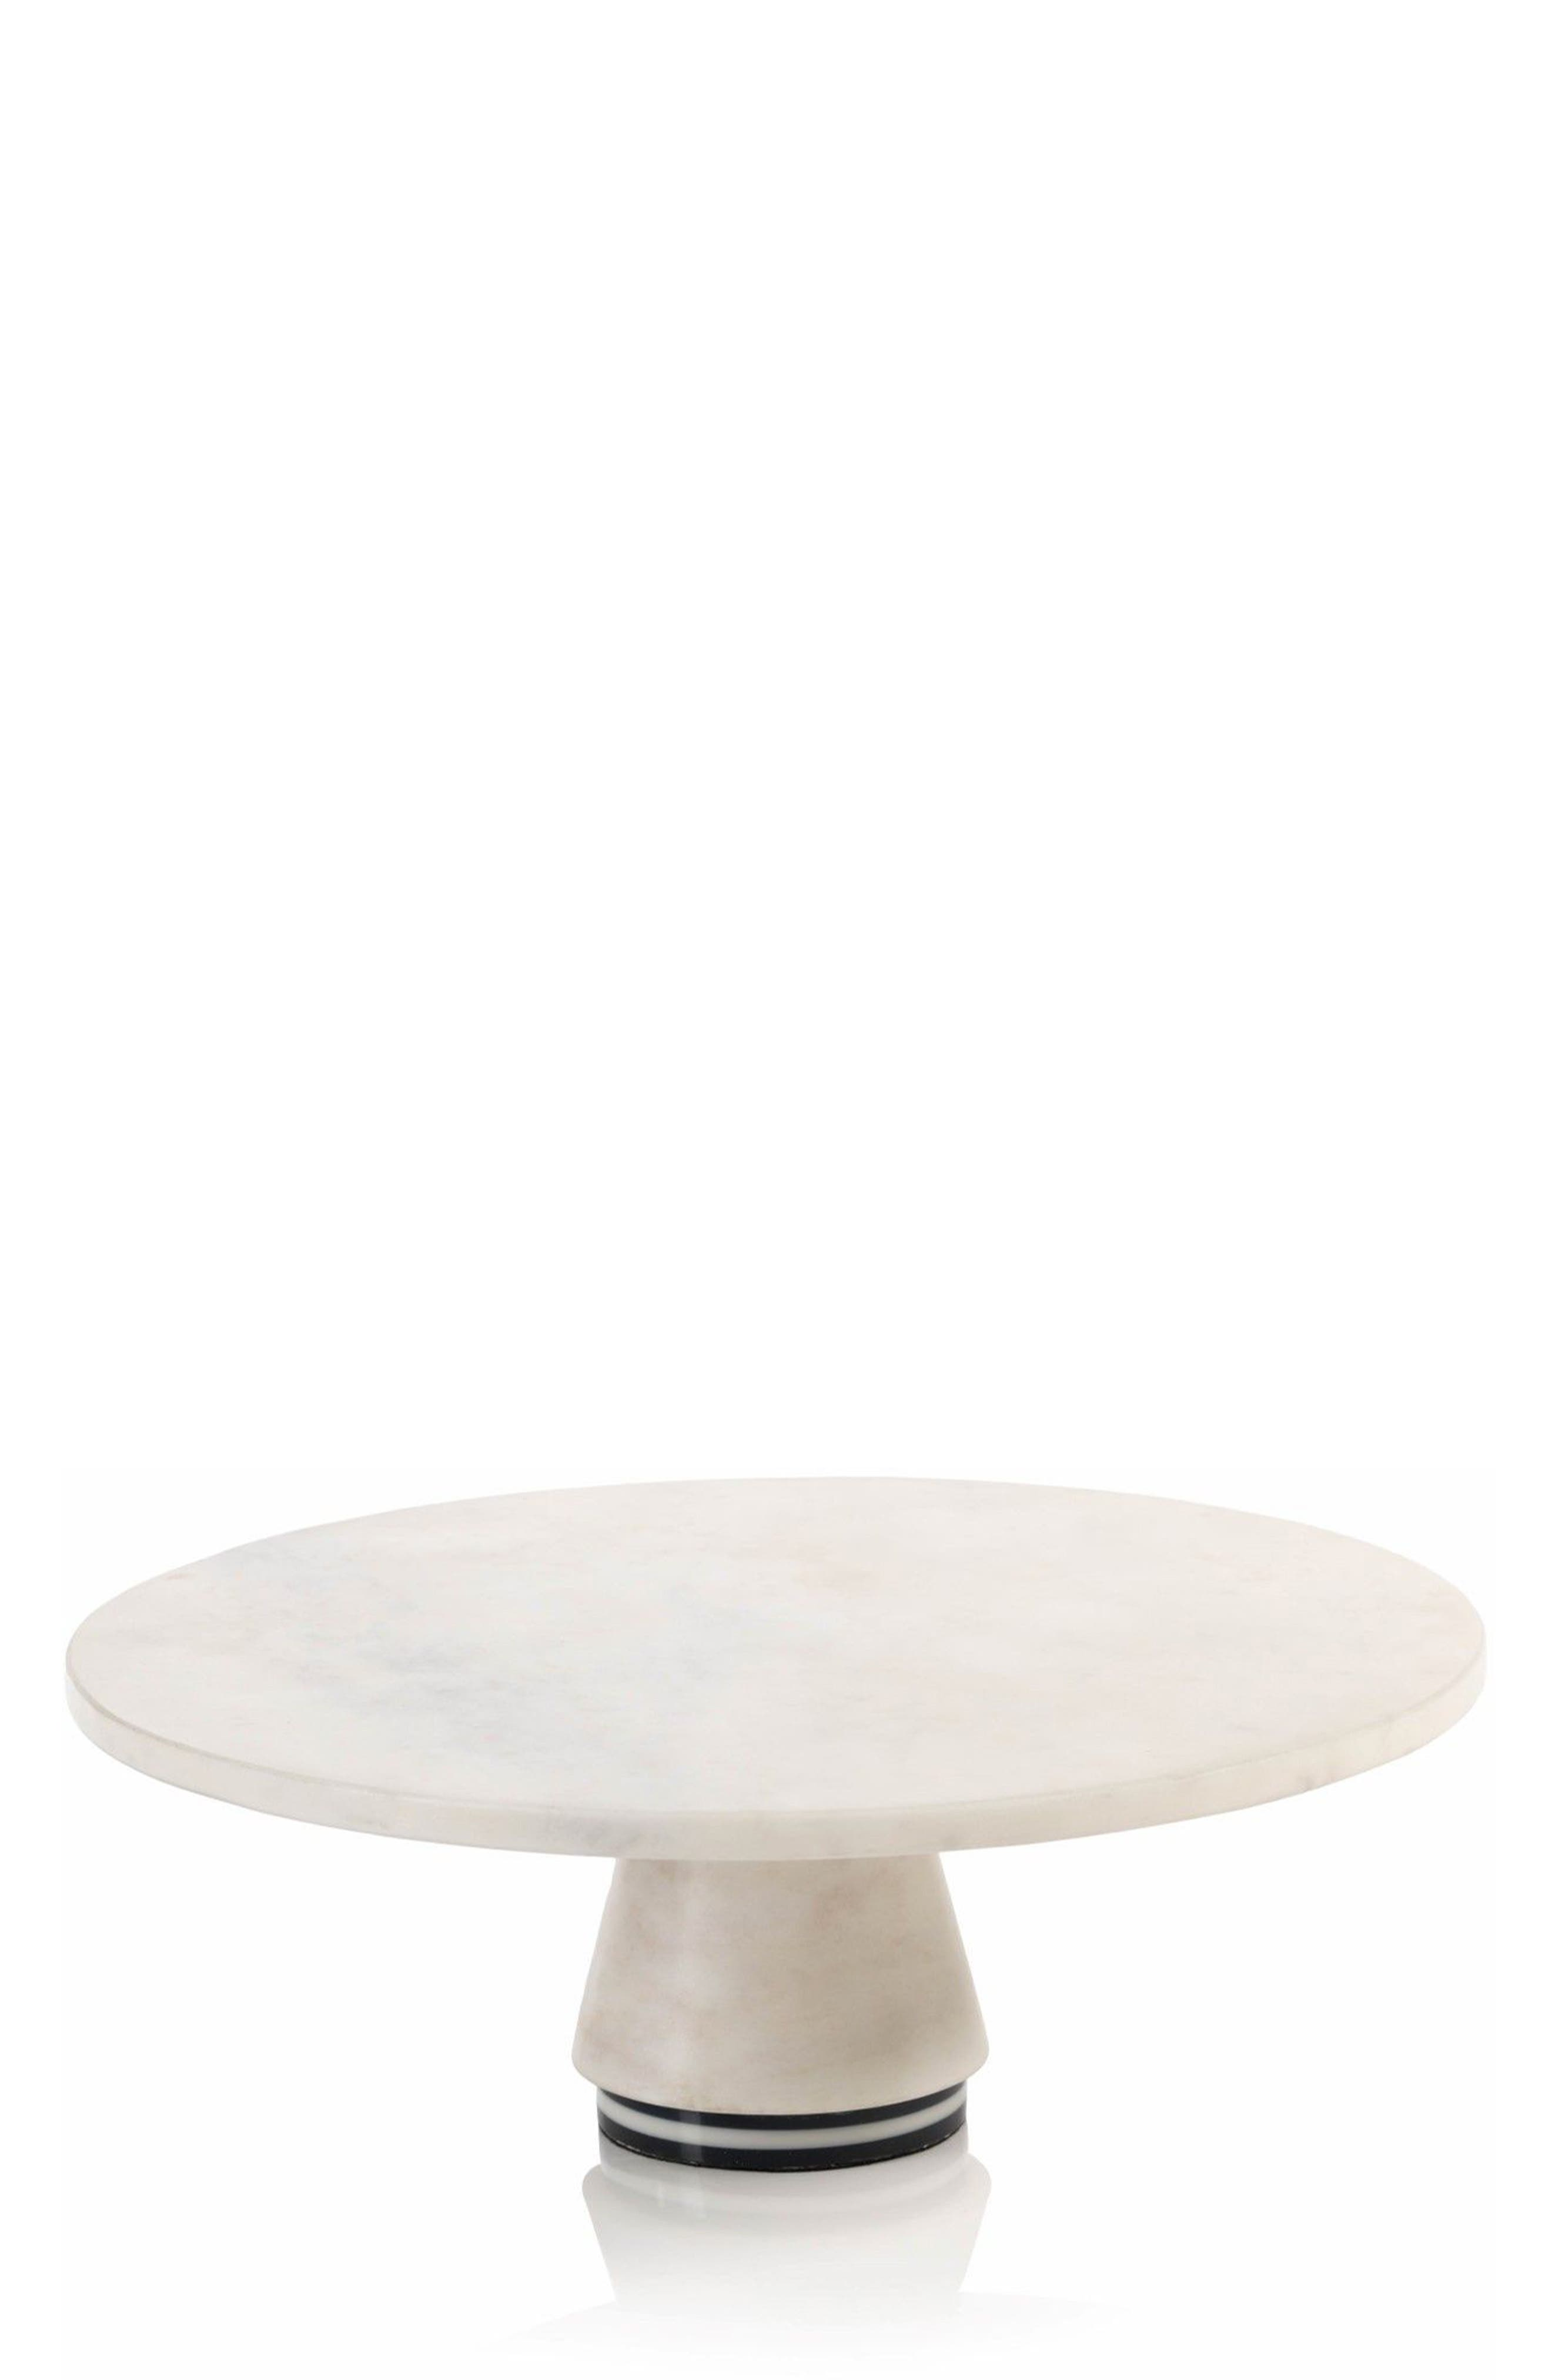 Marine Marble Cake Stand,                         Main,                         color, White/ Black